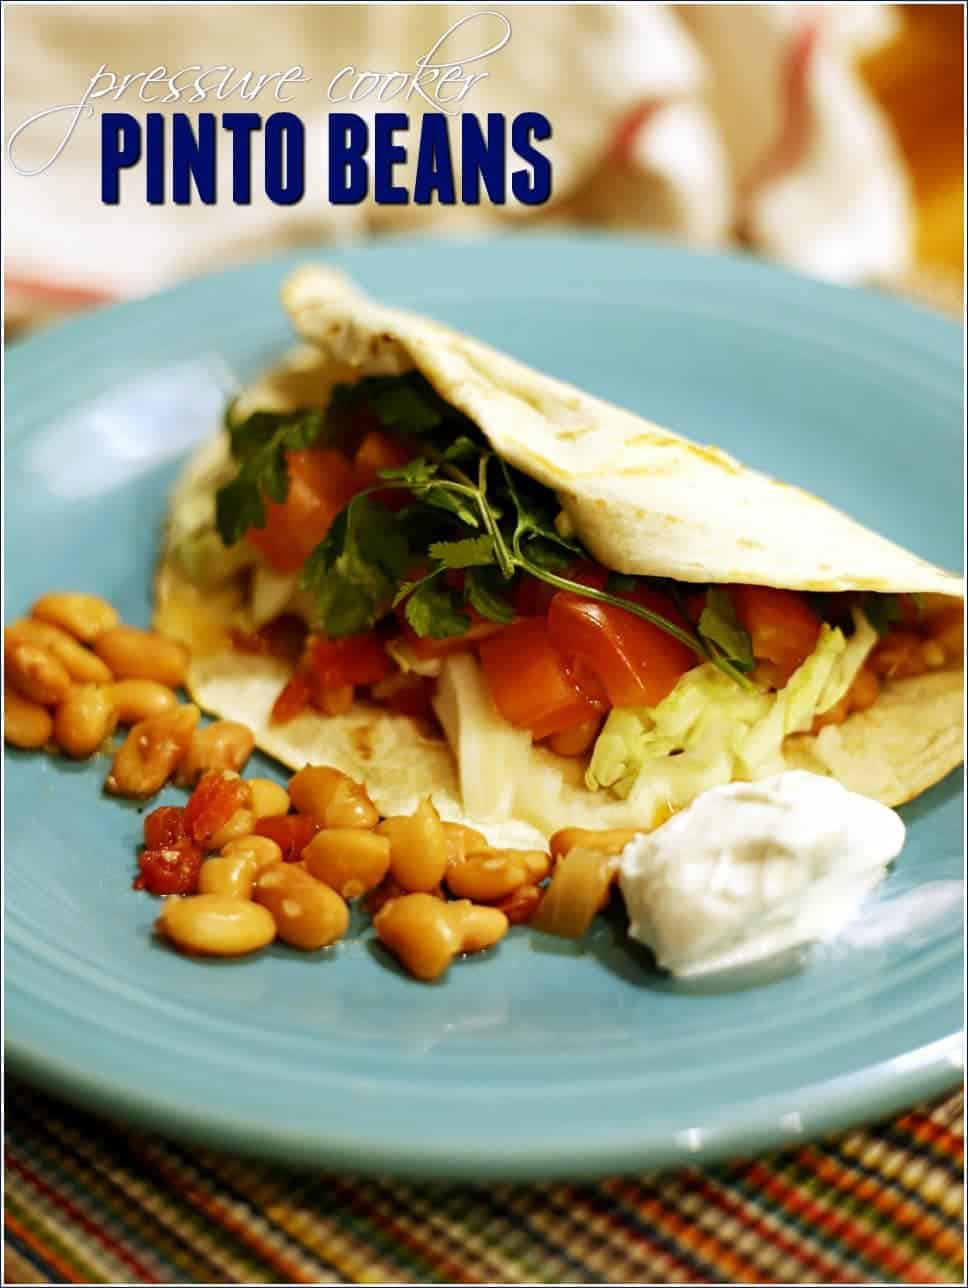 Pressure Cooker Pinto Beans Recipe